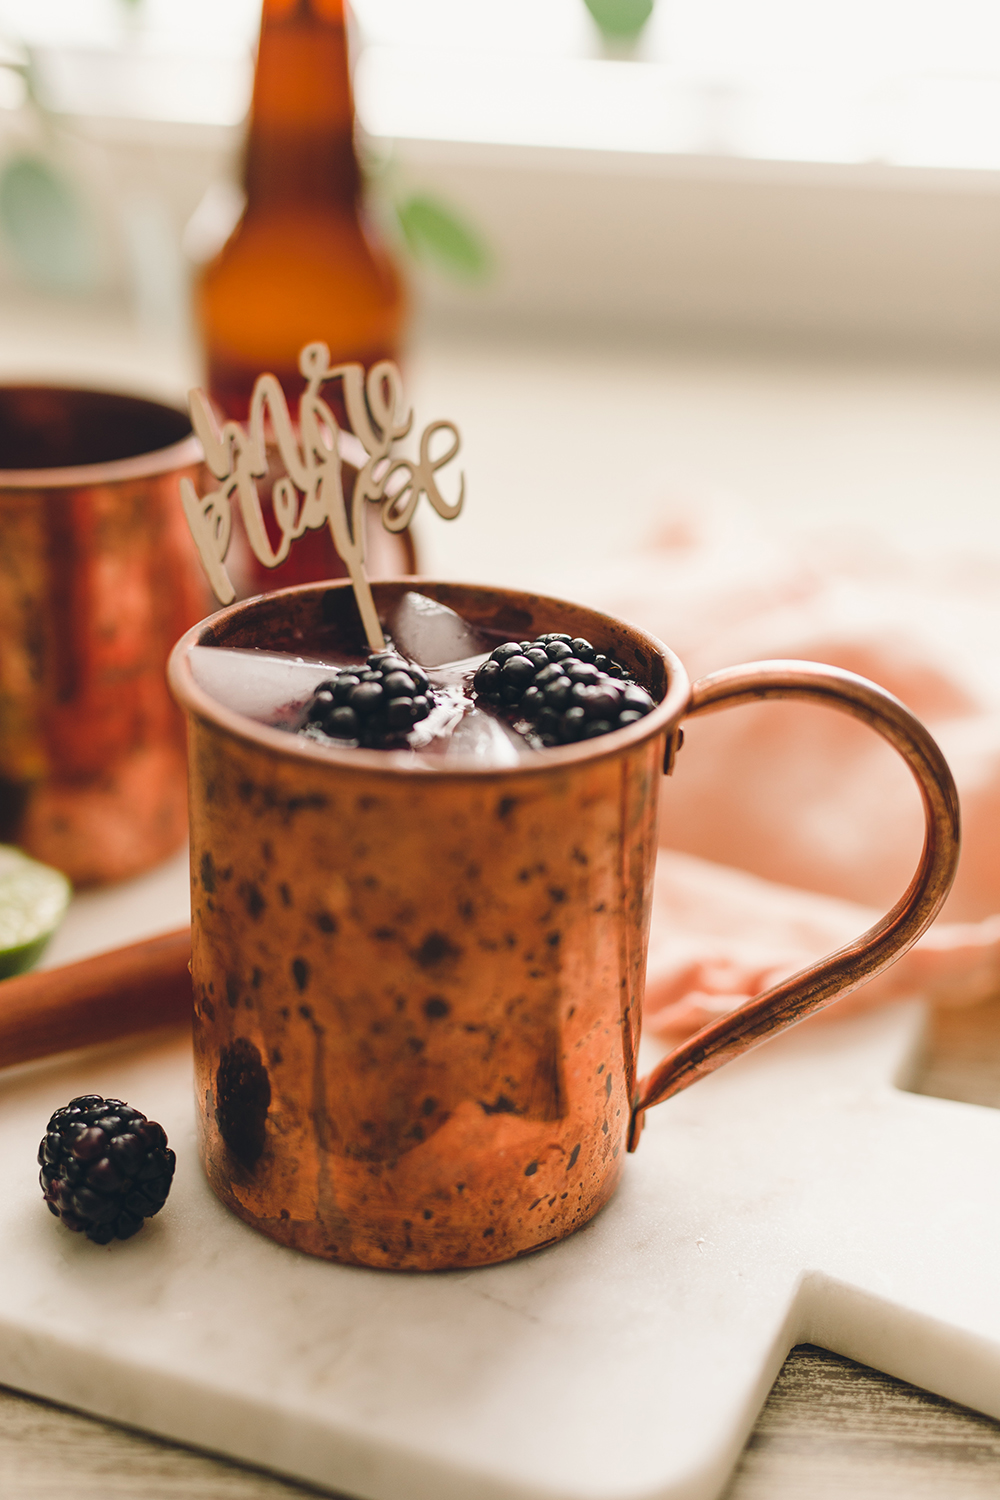 Blackberry moscow mule recipe | A Fabulous Fete